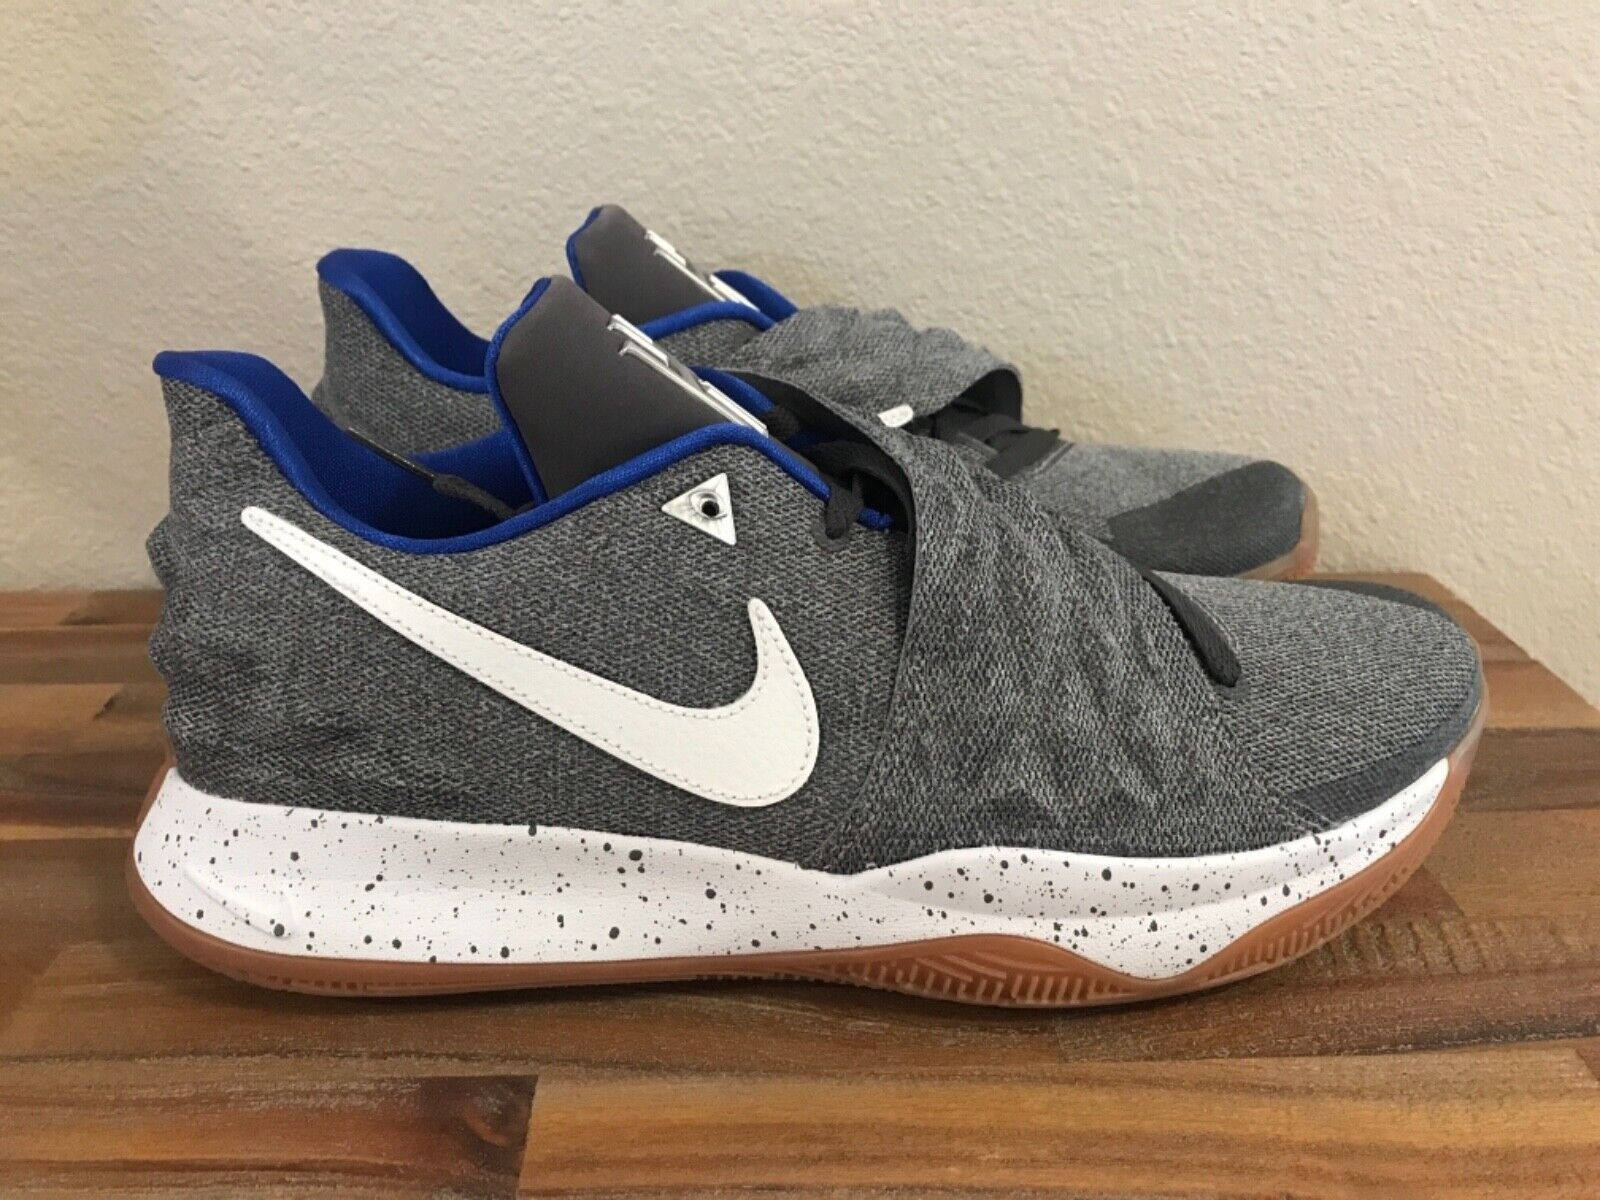 Nike Kyrie Low Uncle Drew QS Mens Basketball shoes AO8979-005 Men Size 13 New